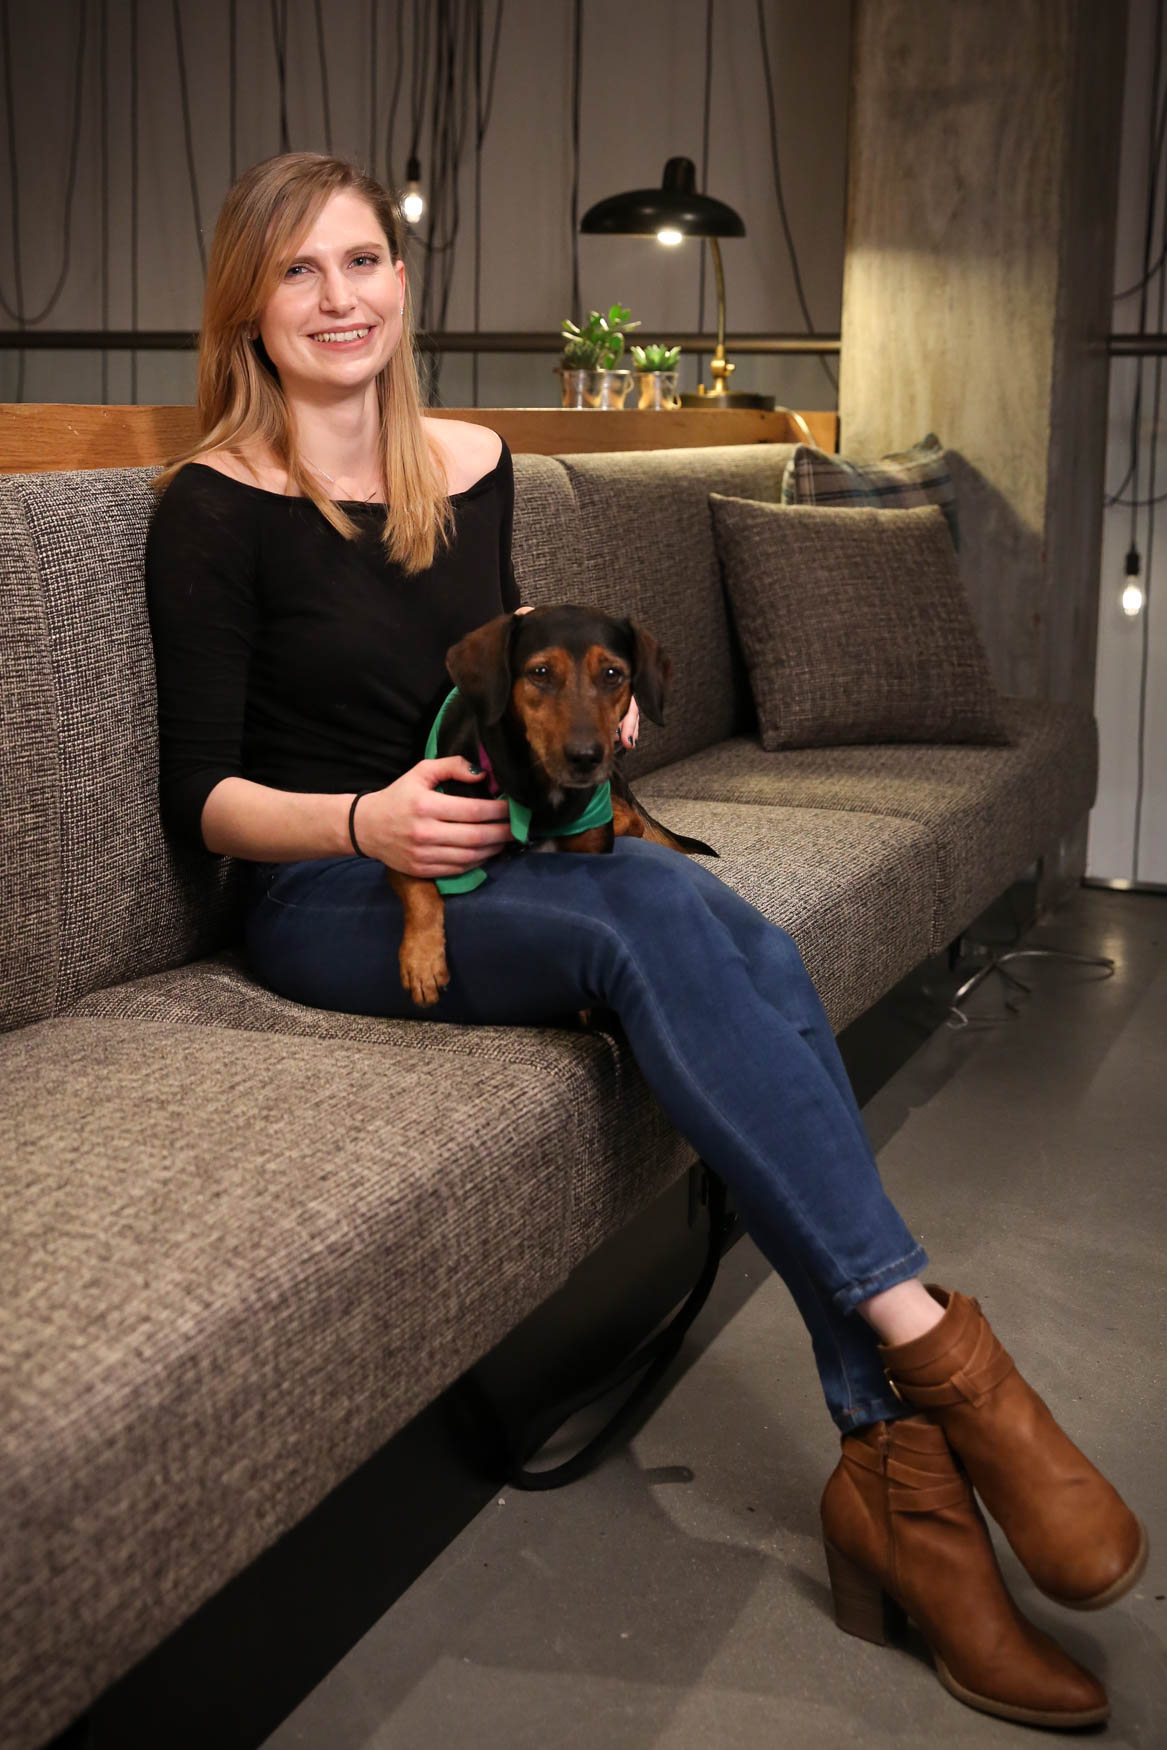 Meet Kirk and Sam, a 5-year-old Dachshund mix and a 27-year-old human respectively. Photo location: Moxy Washington, D.C. Downtown (Image: Amanda Andrade-Rhoades/ DC Refined)